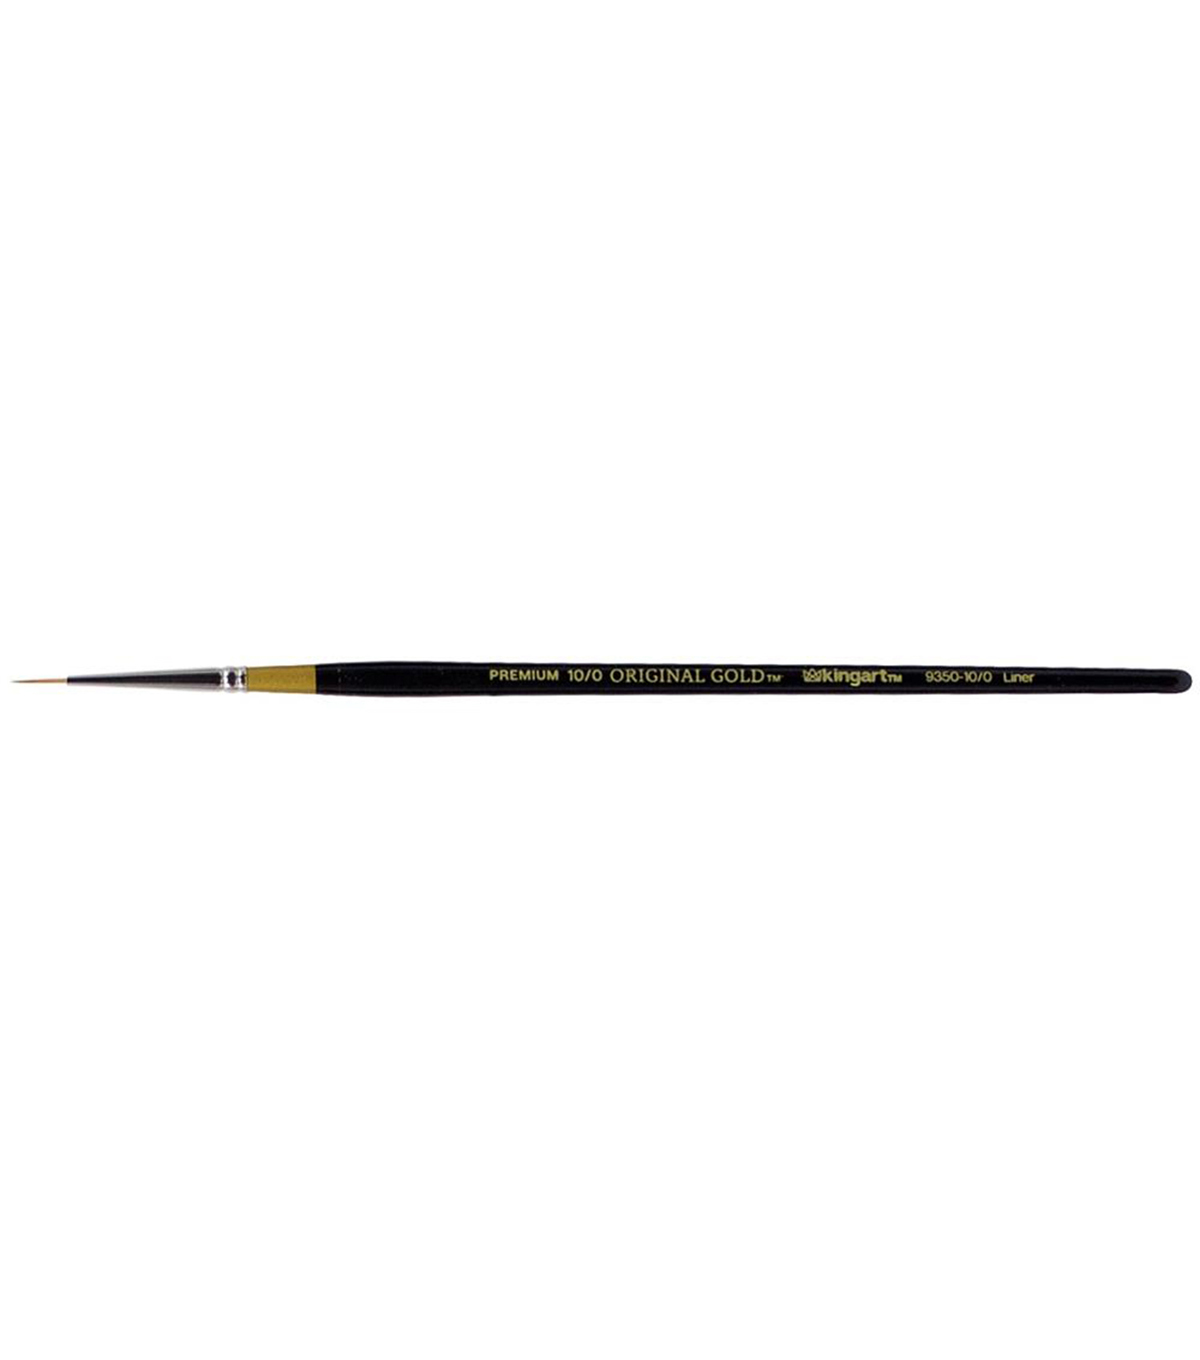 KINGART Original Gold Paint Brush-Liner, Size 10/0